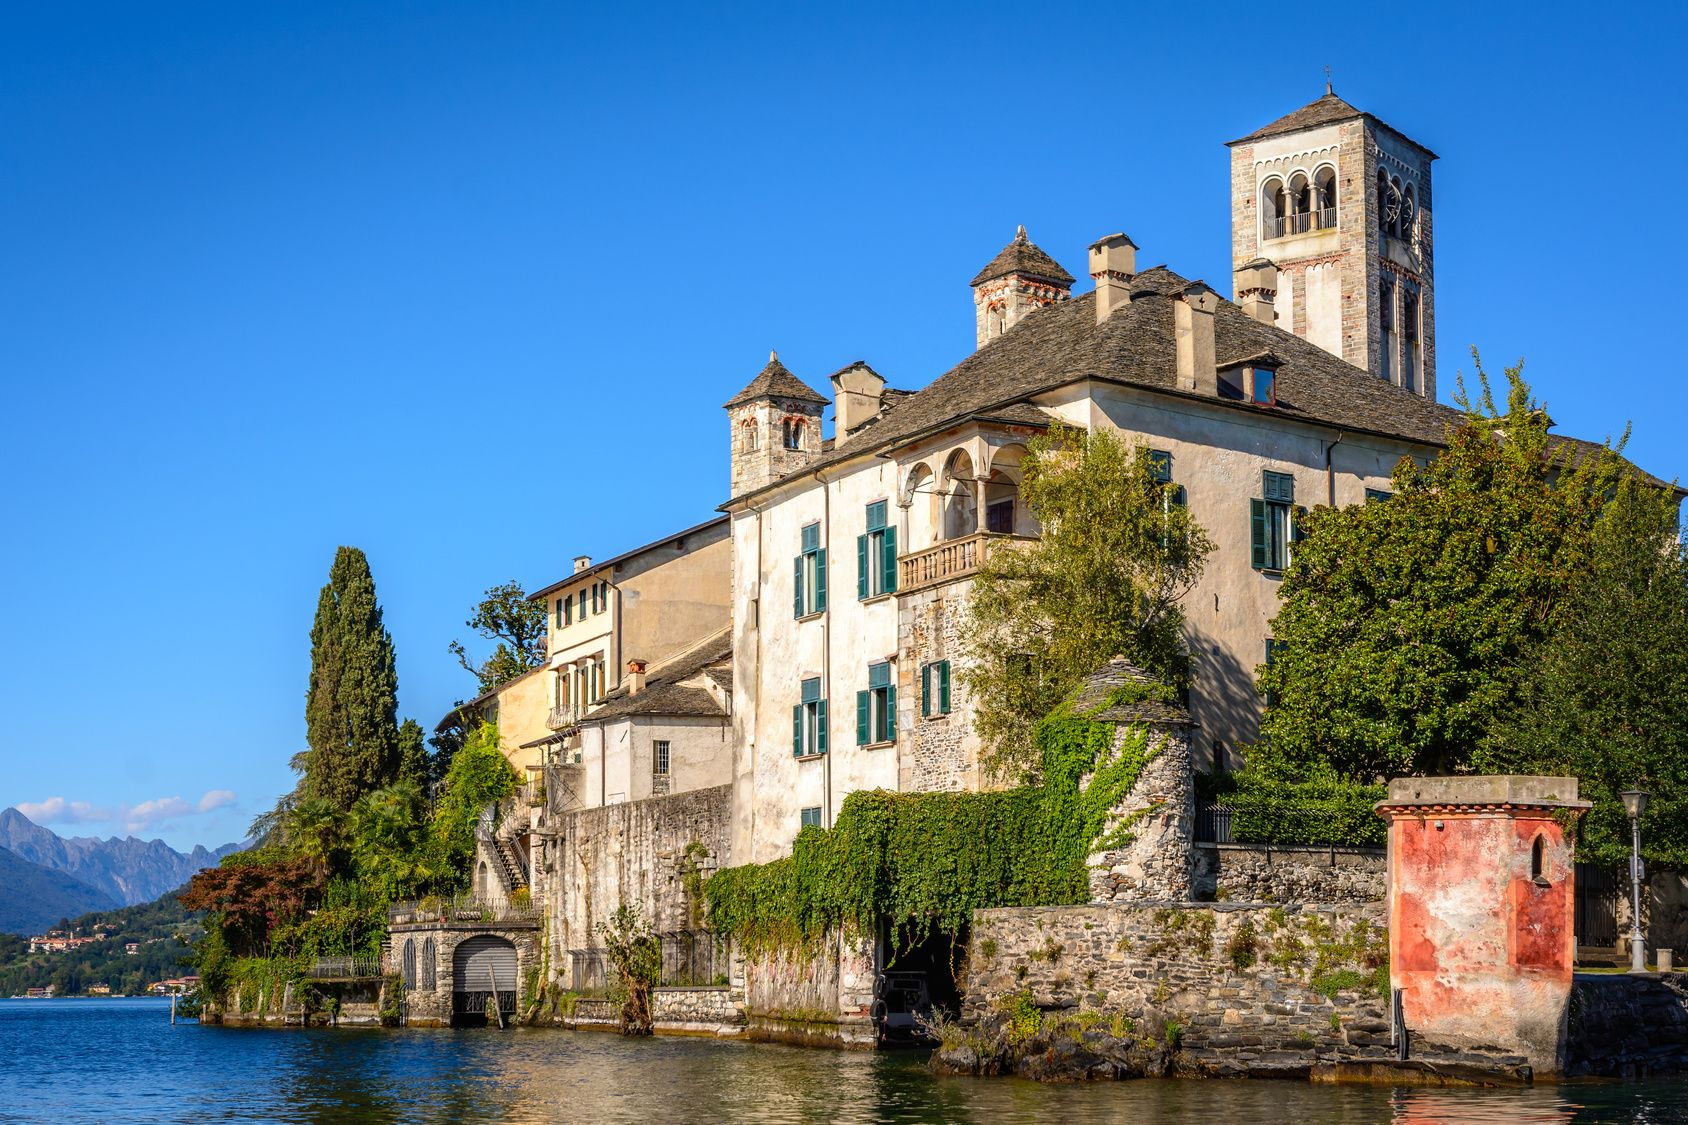 Lake Orta is known as the most romantic lake in Italy. located in Piedmont in northern Italy a few miles away from the largest and most famous lake Maggiore. In the middle of the lake there is the beautiful island of San Giulio.